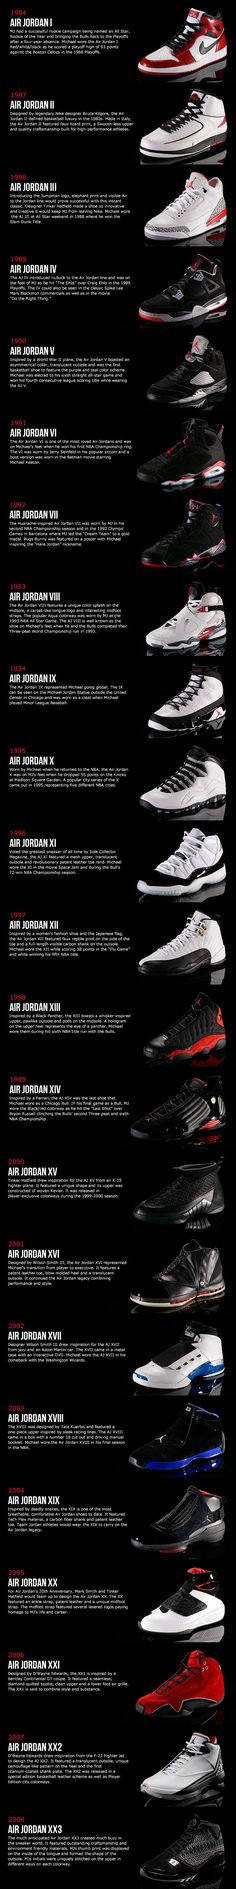 History of Air Jordan Shoes. Air Jordan is a brand of basketball footwear and athletic clothing produced by Nike and endorsed and created for Chicago Bulls basketball player Michael Jordan Aegis Gears Jordans Retro, Nike Air Jordans, Jordans Sneakers, Shoes Sneakers, Jordans Outfit For Men, All Jordans, White Jordans, Sneakers Adidas, Chunky Sneakers